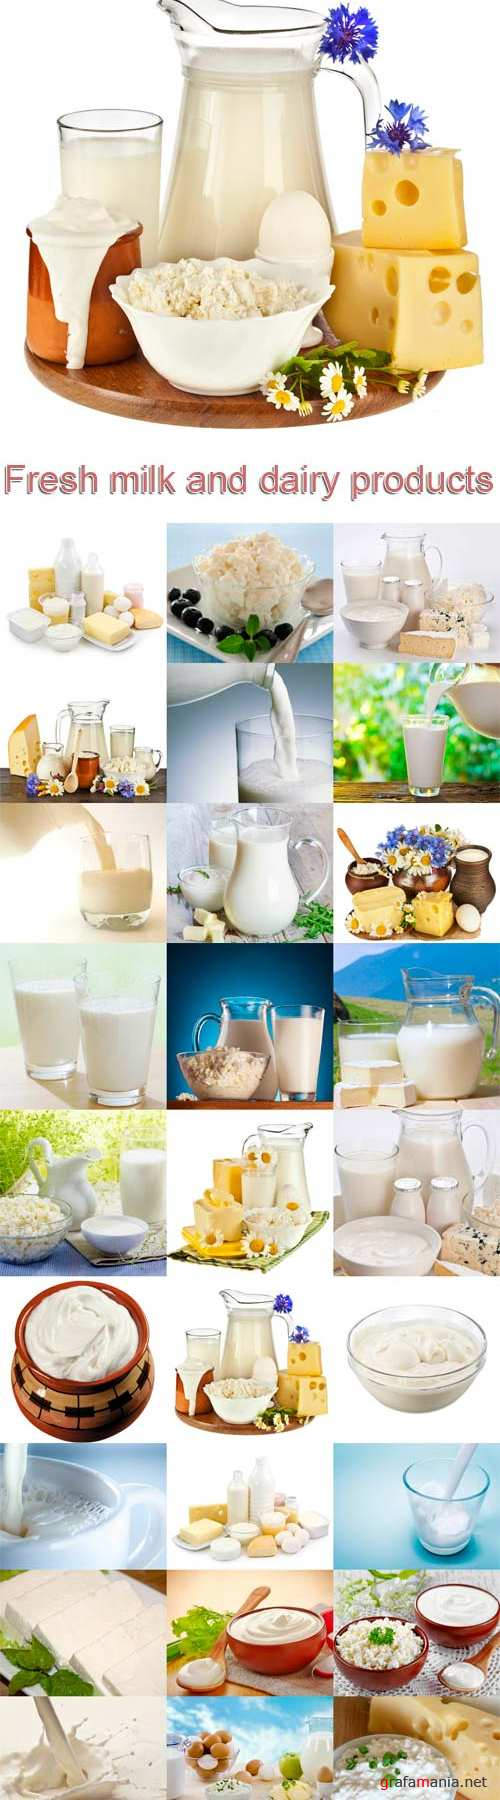 Fresh milk and dairy products